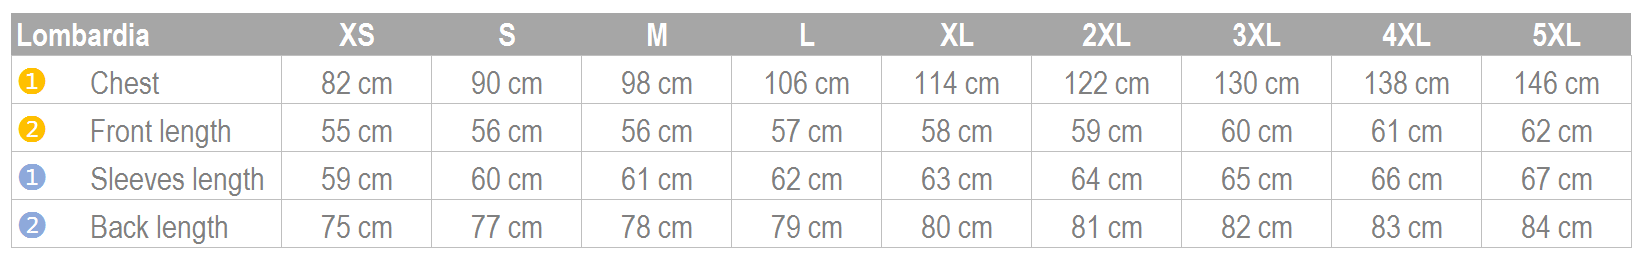 Lombardia Size Guide